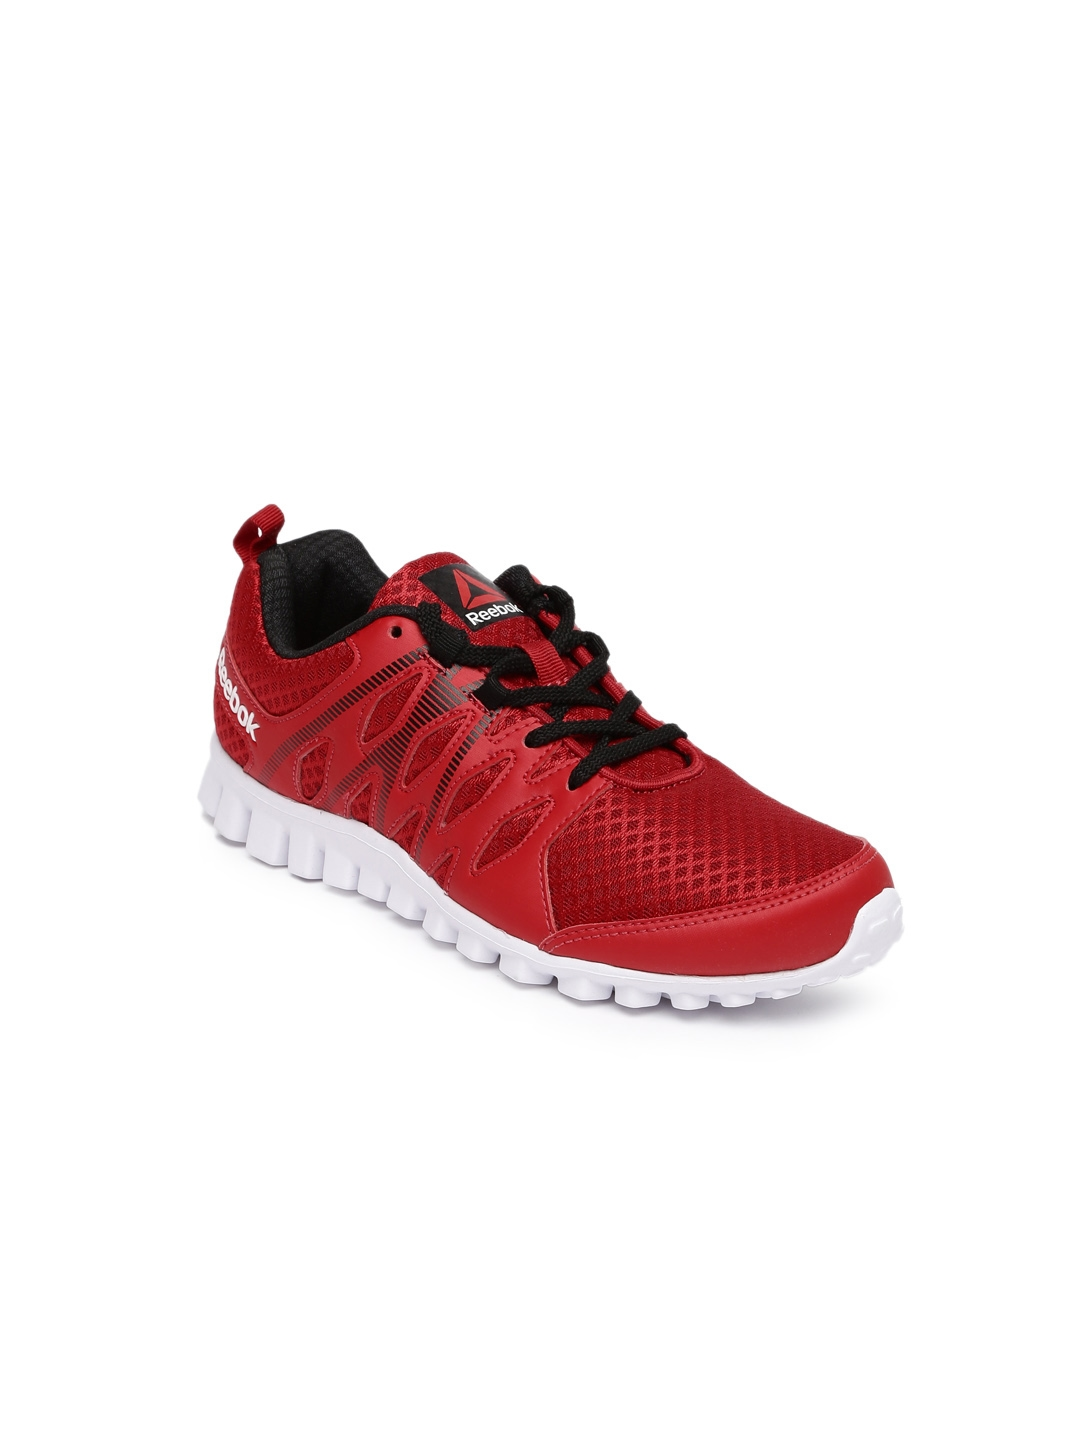 b959ca8614840b Buy Reebok Girls Red Running Shoes - Sports Shoes for Girls 1733474 ...